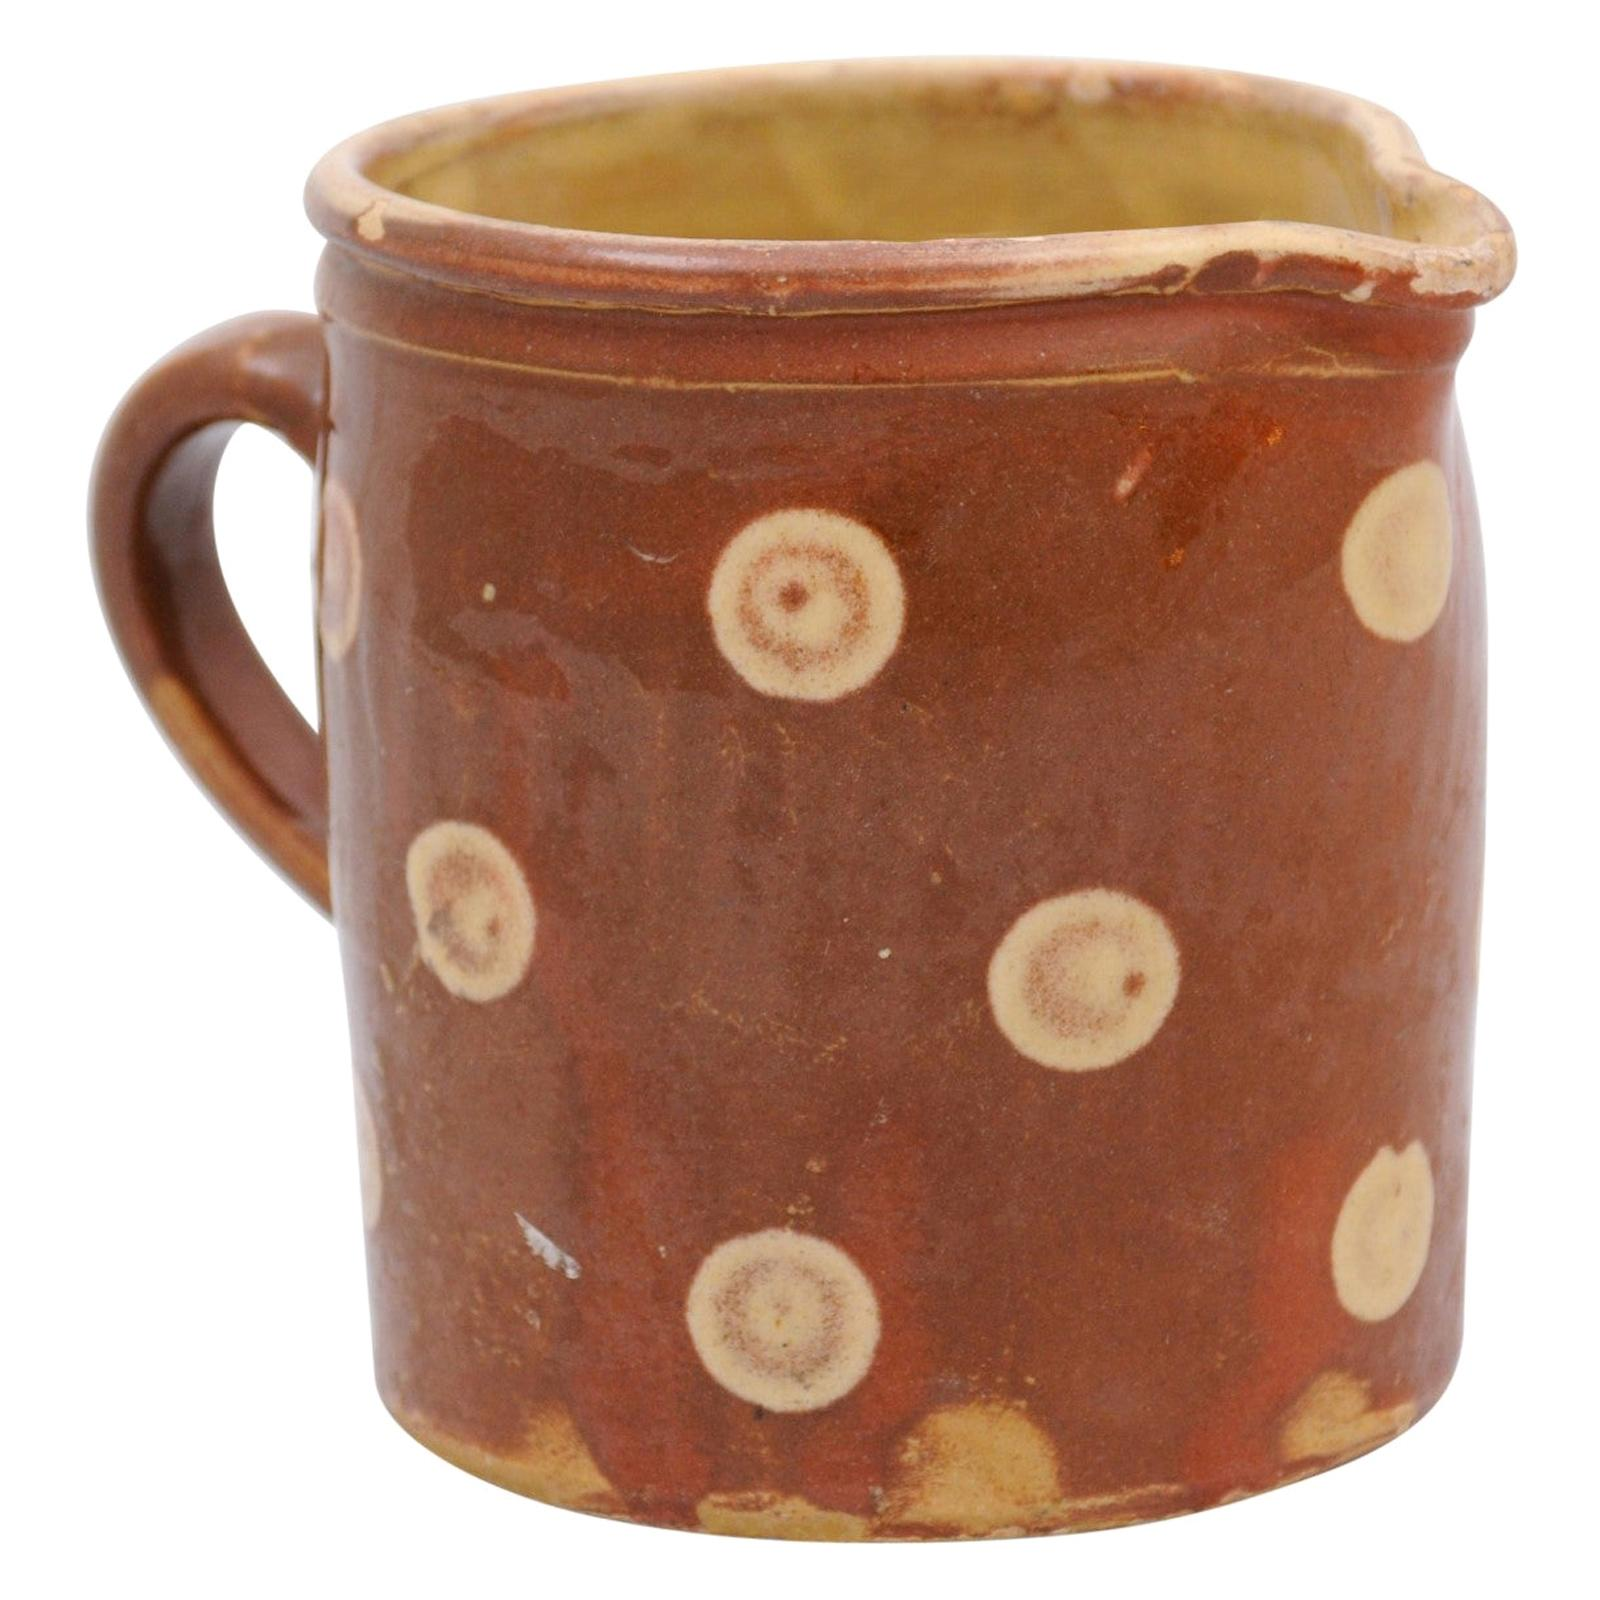 French 19th Century Jaspé Ware Pottery Pitcher with Brown and Cream Glaze